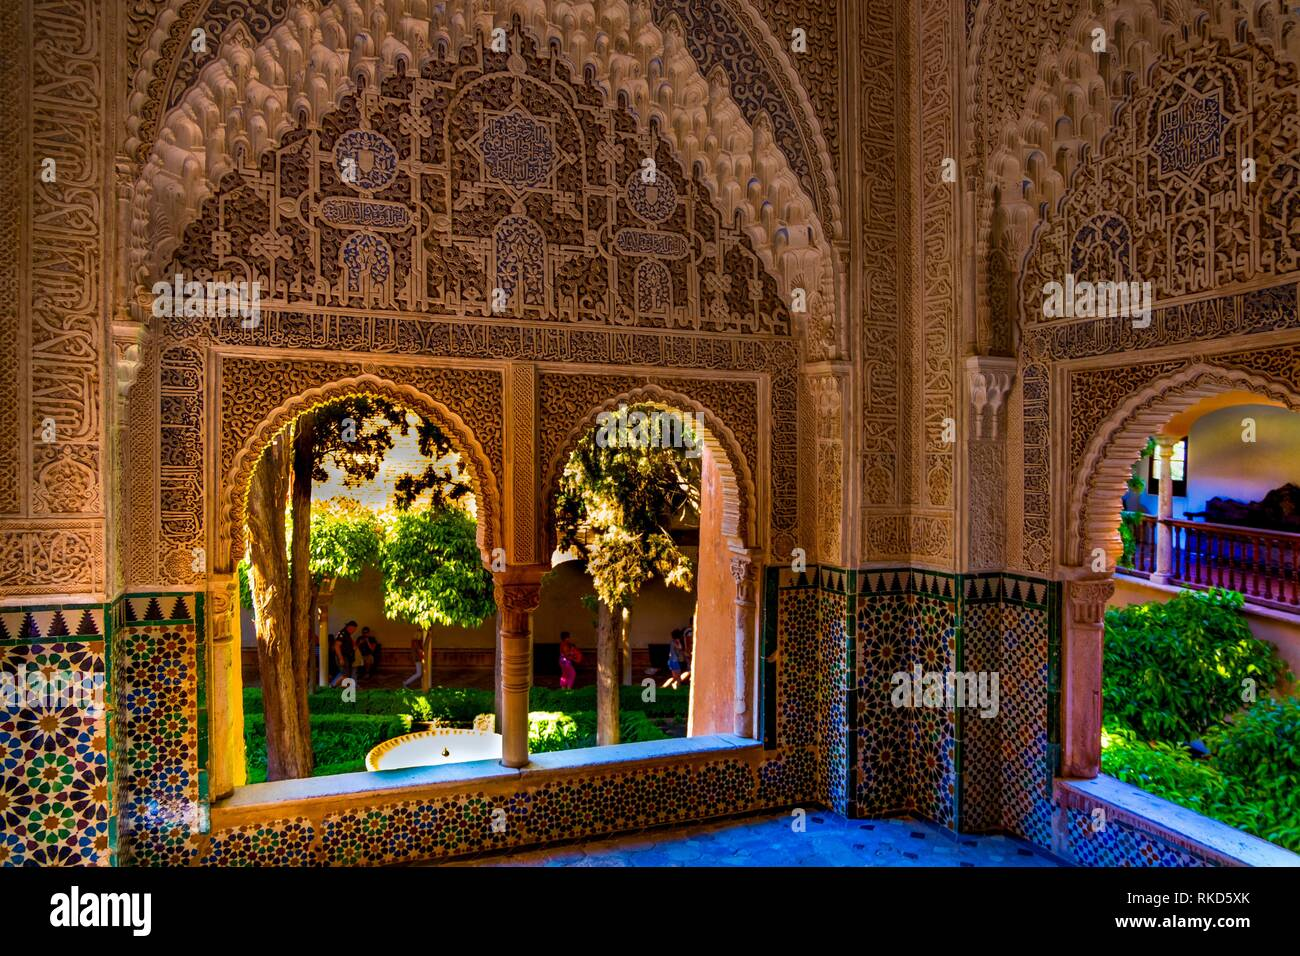 View to the ''Patio de Lindaraja'' from the ''Sala de la dos hermanas'' at the Alhambra Palace, at Granada, Andalusia, Spain. - Stock Image